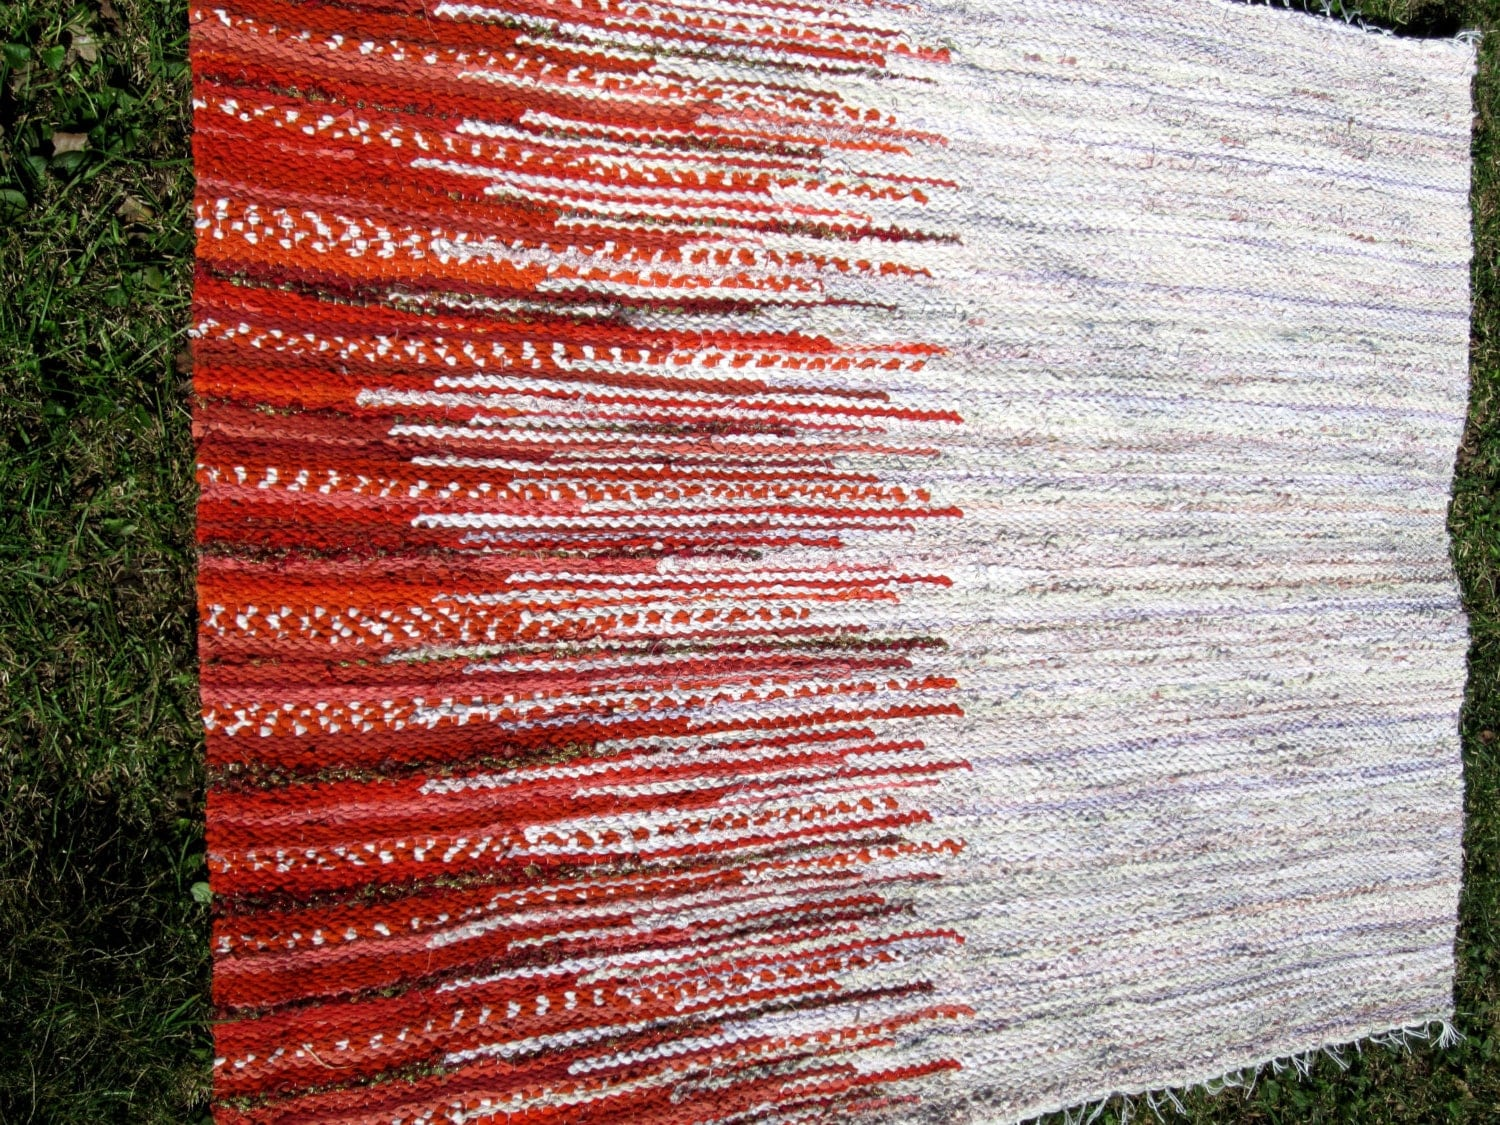 Handwoven rag rug wall decor 459' x 347' pastel by Gunaspalete